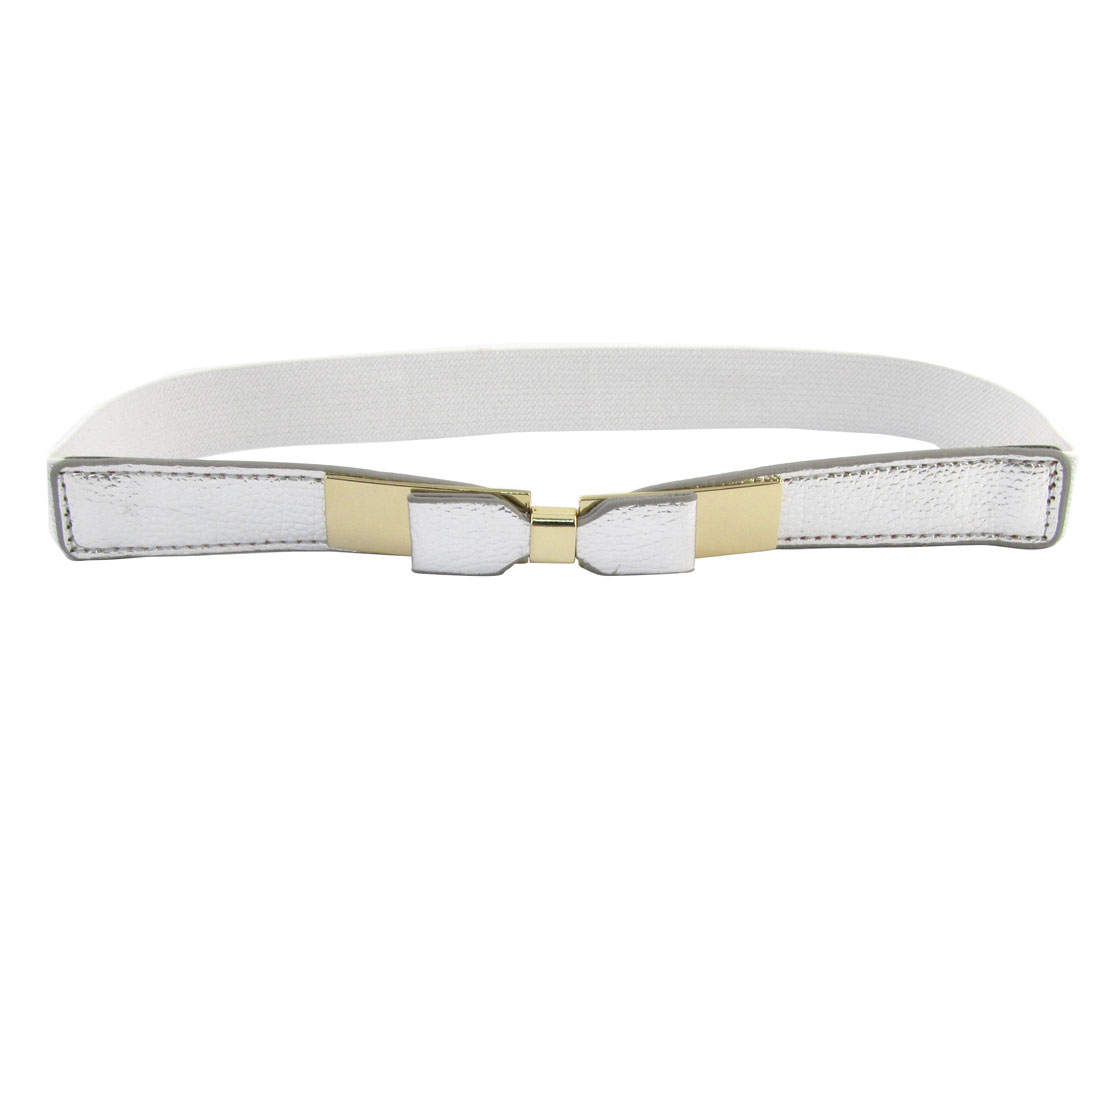 Silver Tone Metal Rectangle Shape Interlock Buckle Textured Spandex Waist Belt